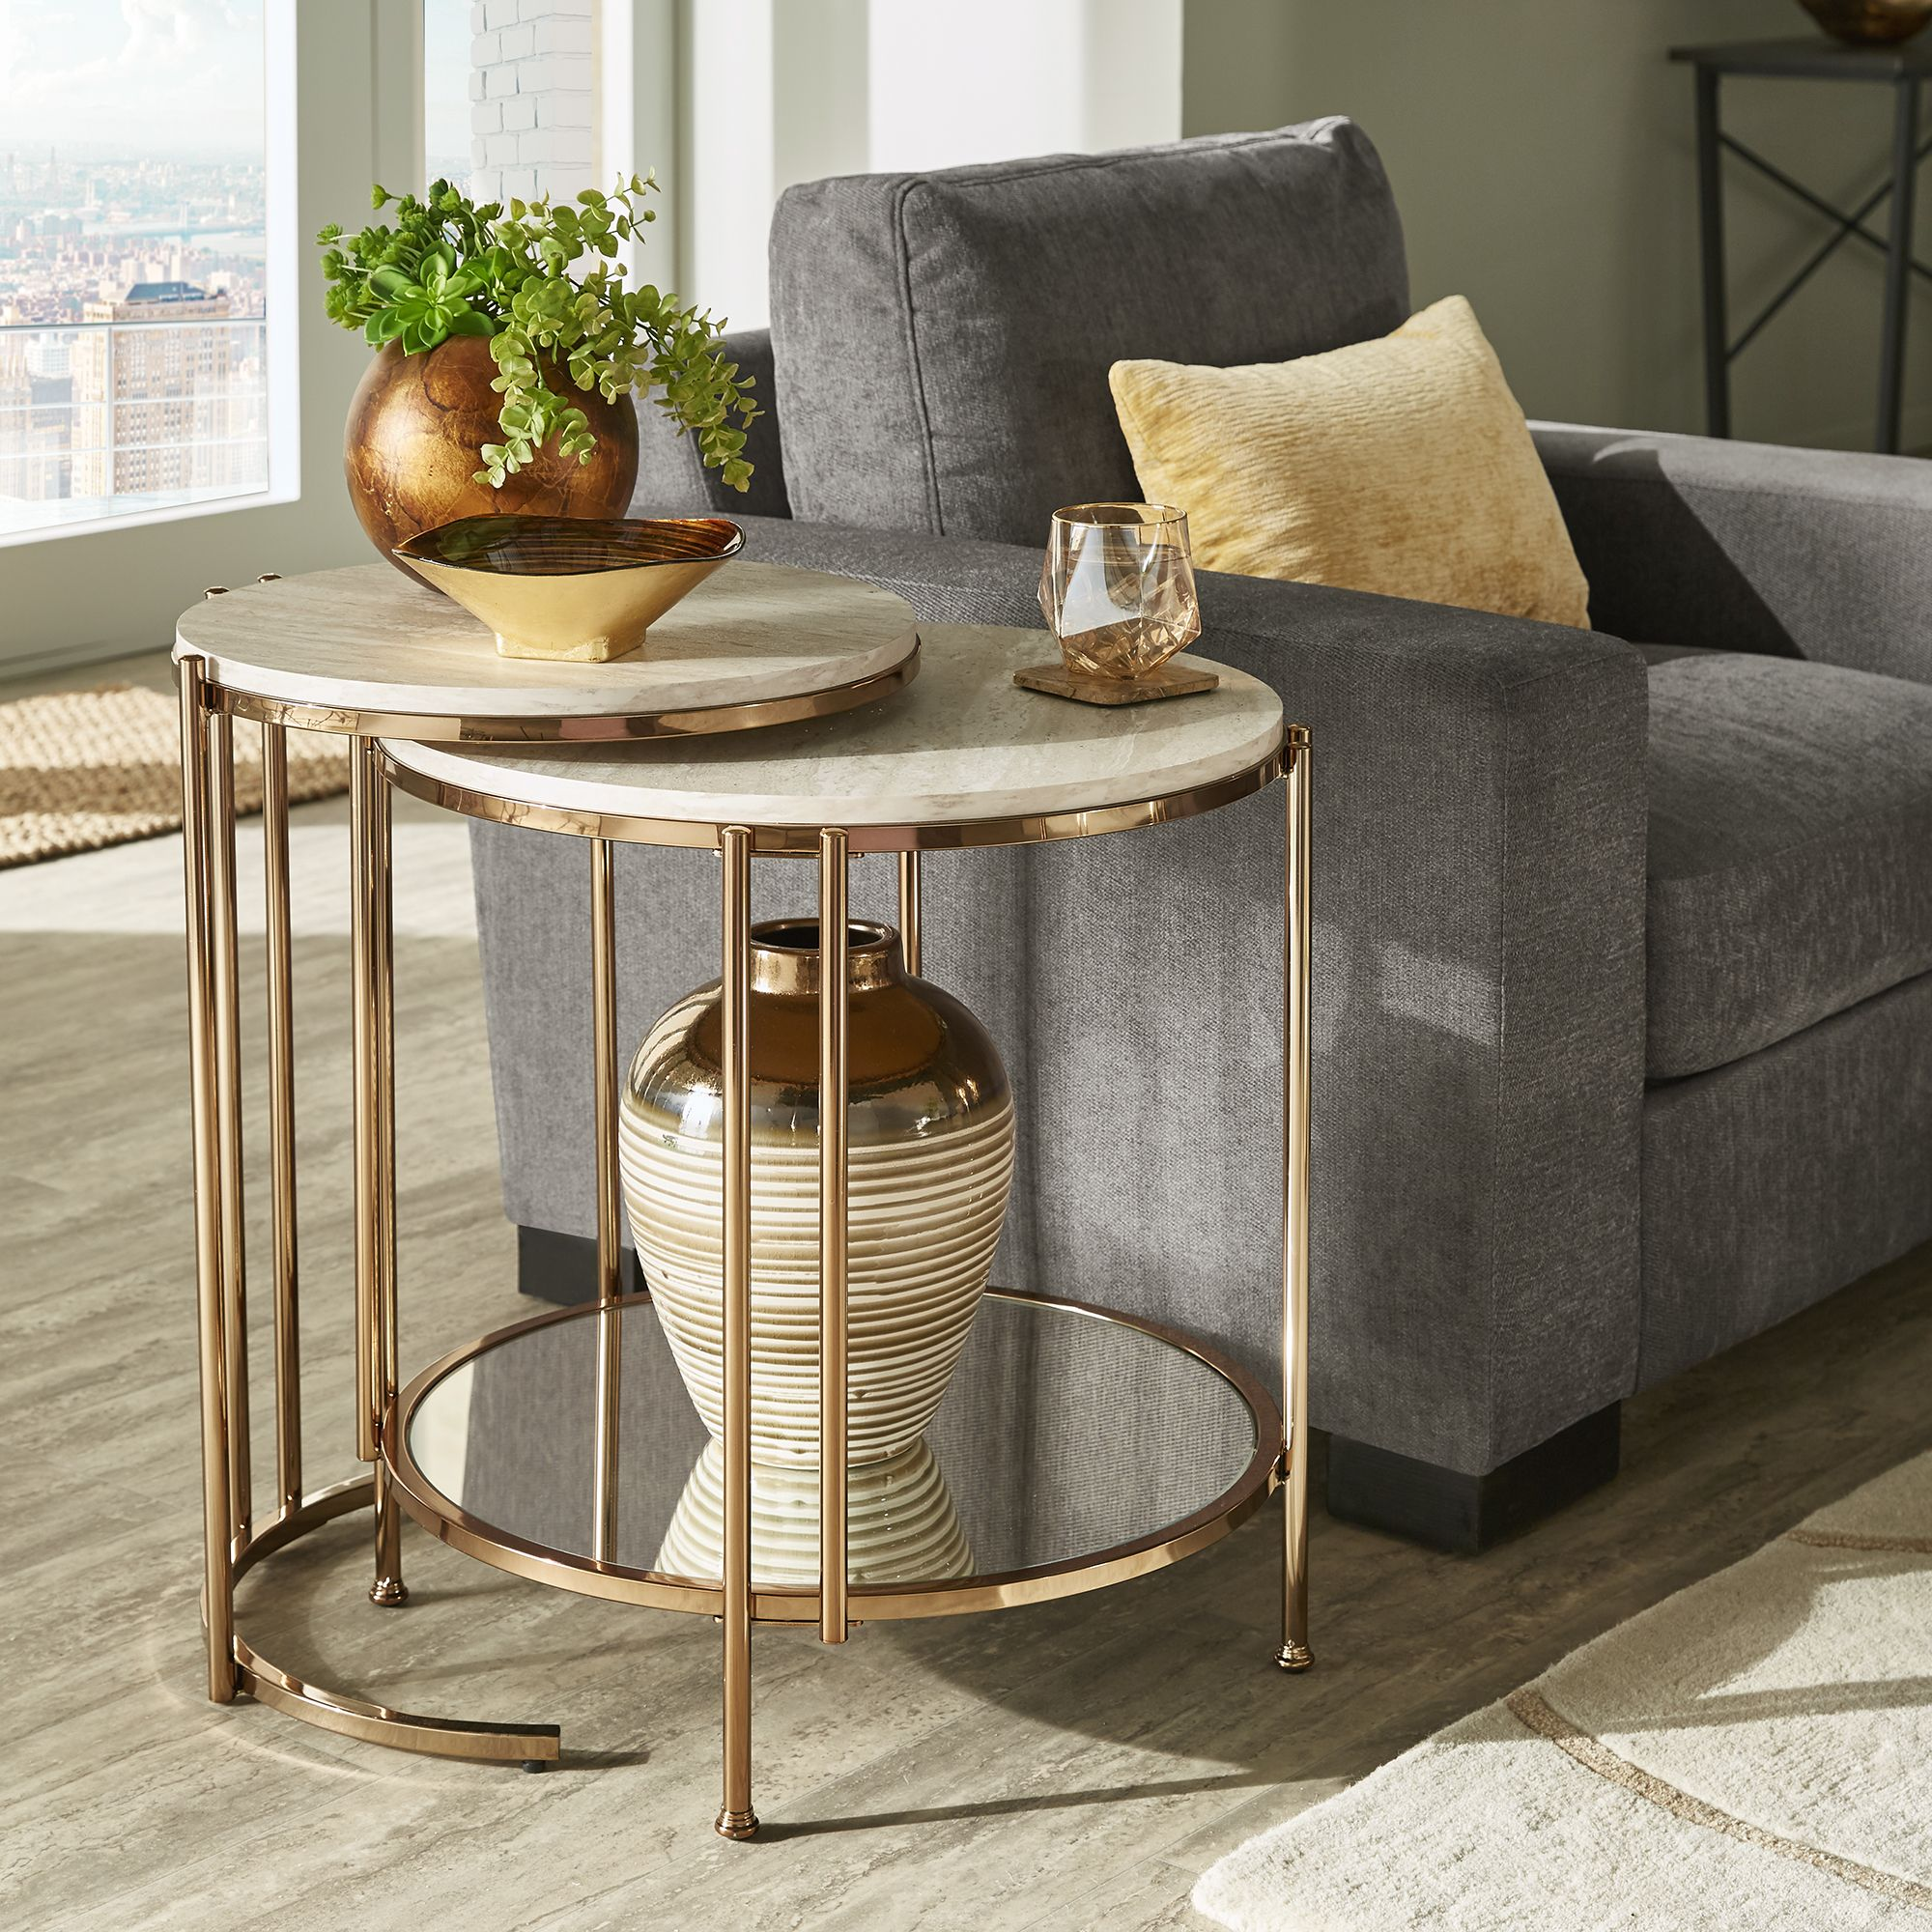 Overstock Com Online Shopping Bedding Furniture Electronics Jewelry Clothing More Table Decor Living Room Nesting Tables Living Room Gold Living Room